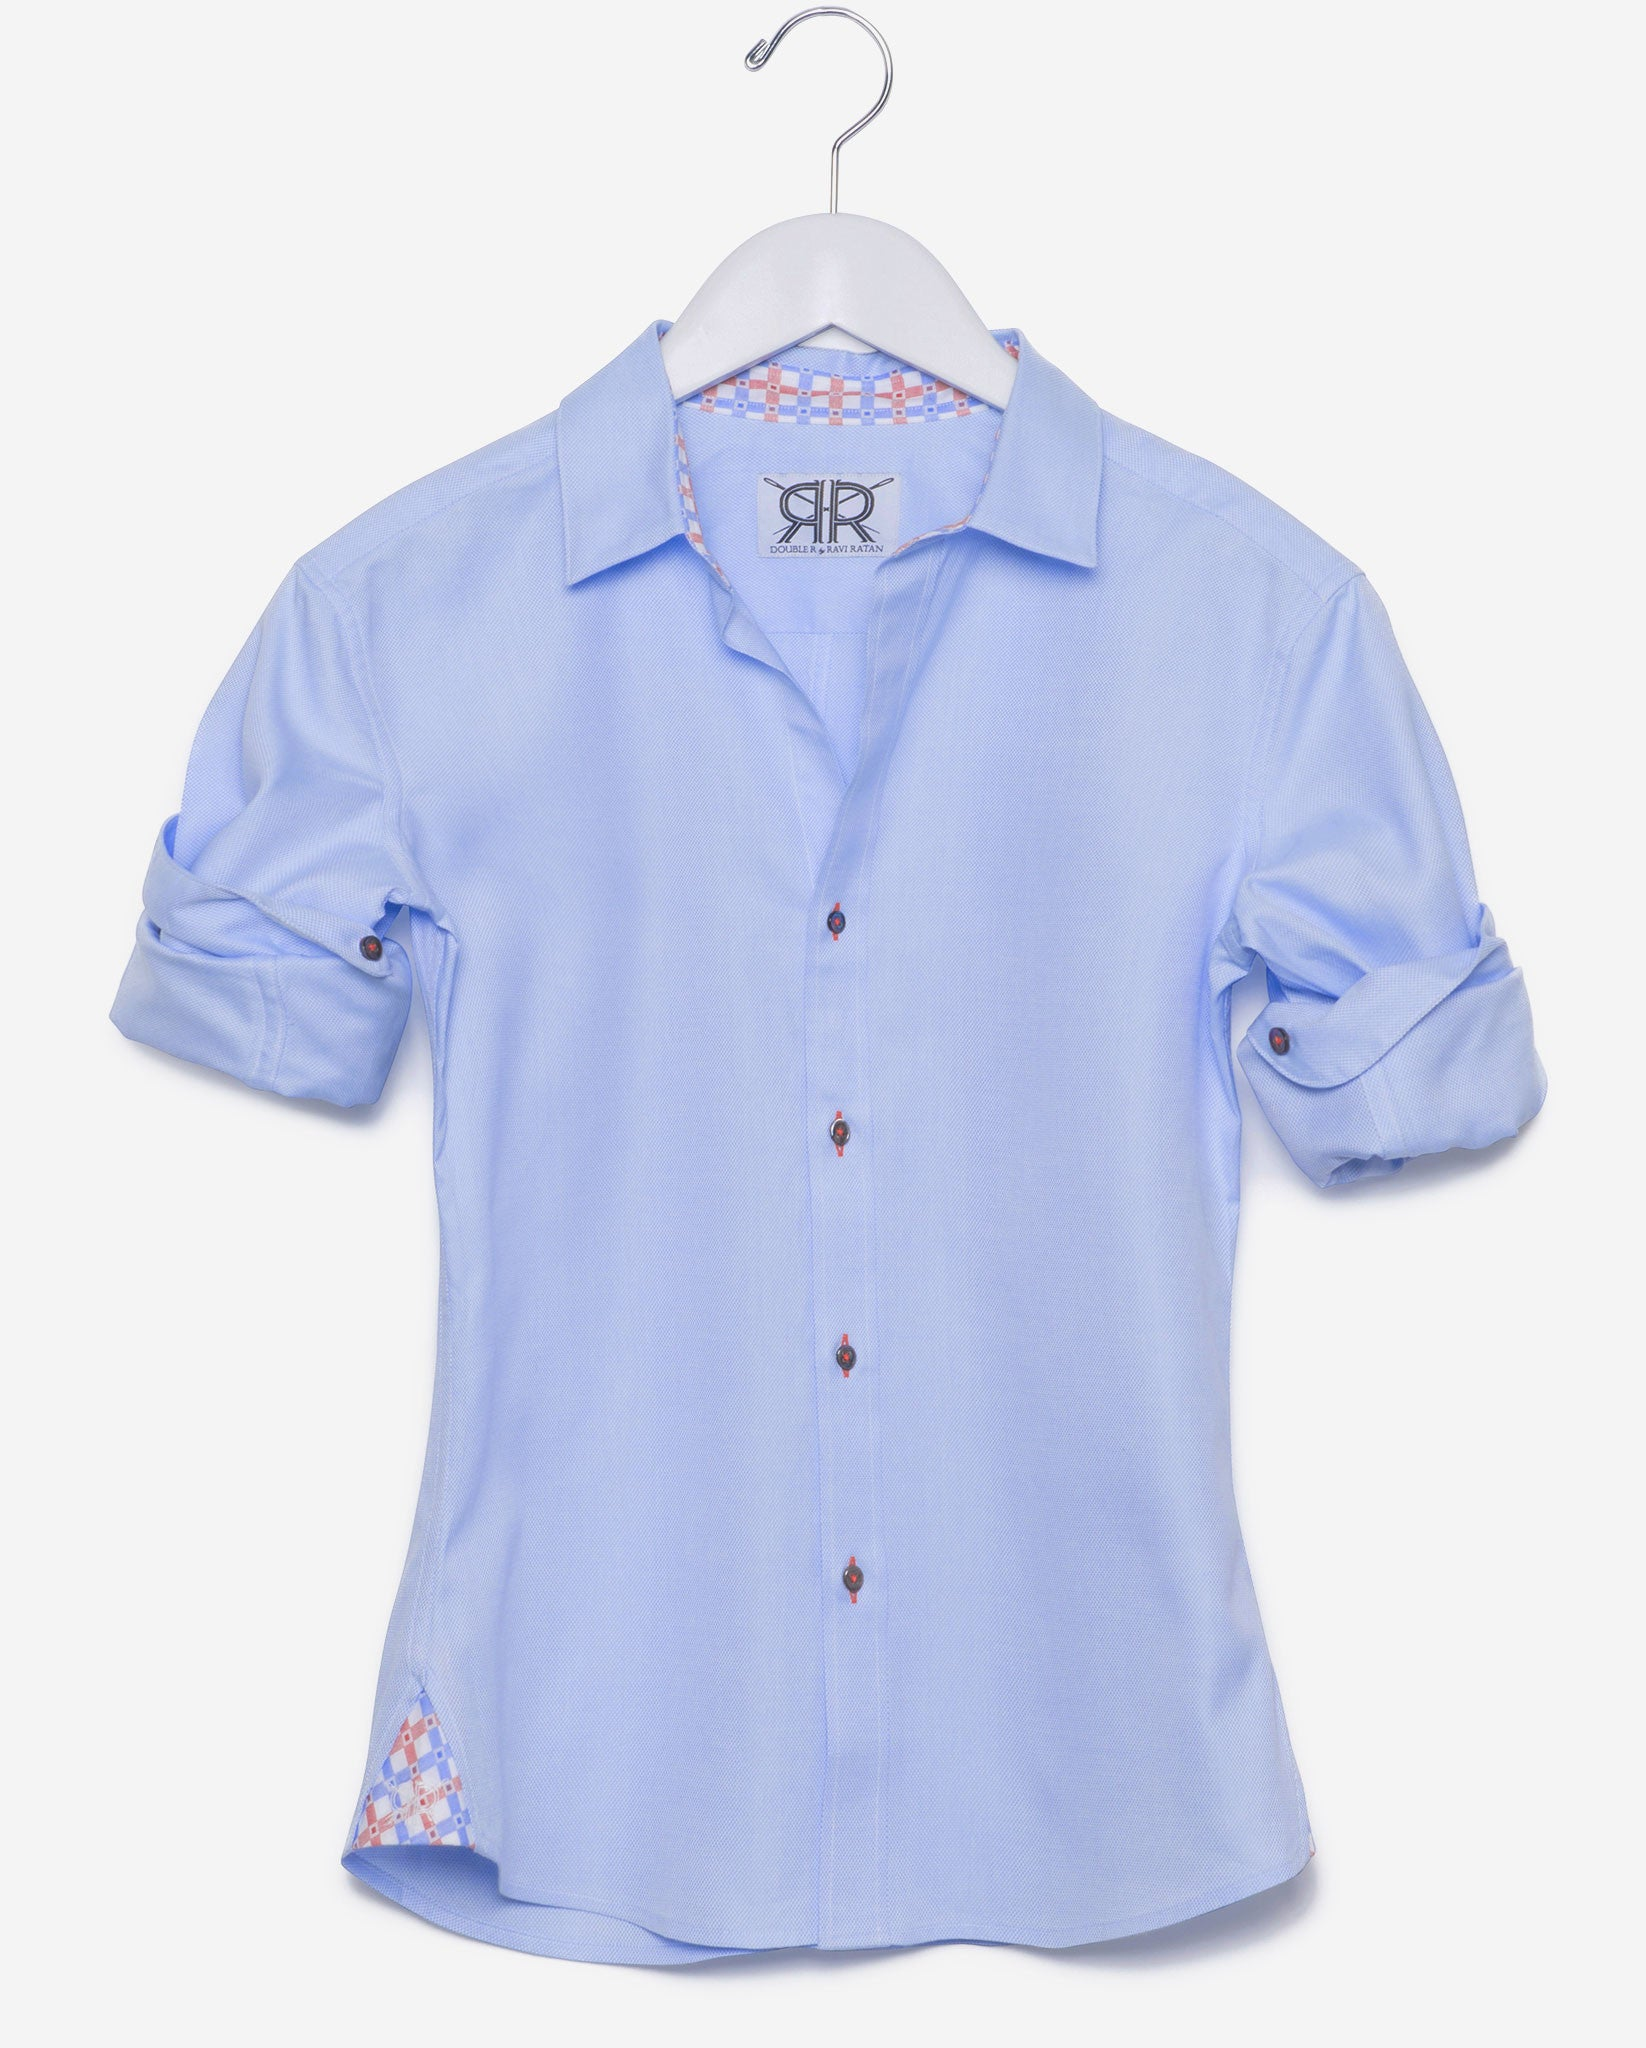 Tailored Shirt- Blue Oxford w/ Red/Blue Contrast Check Women's ...